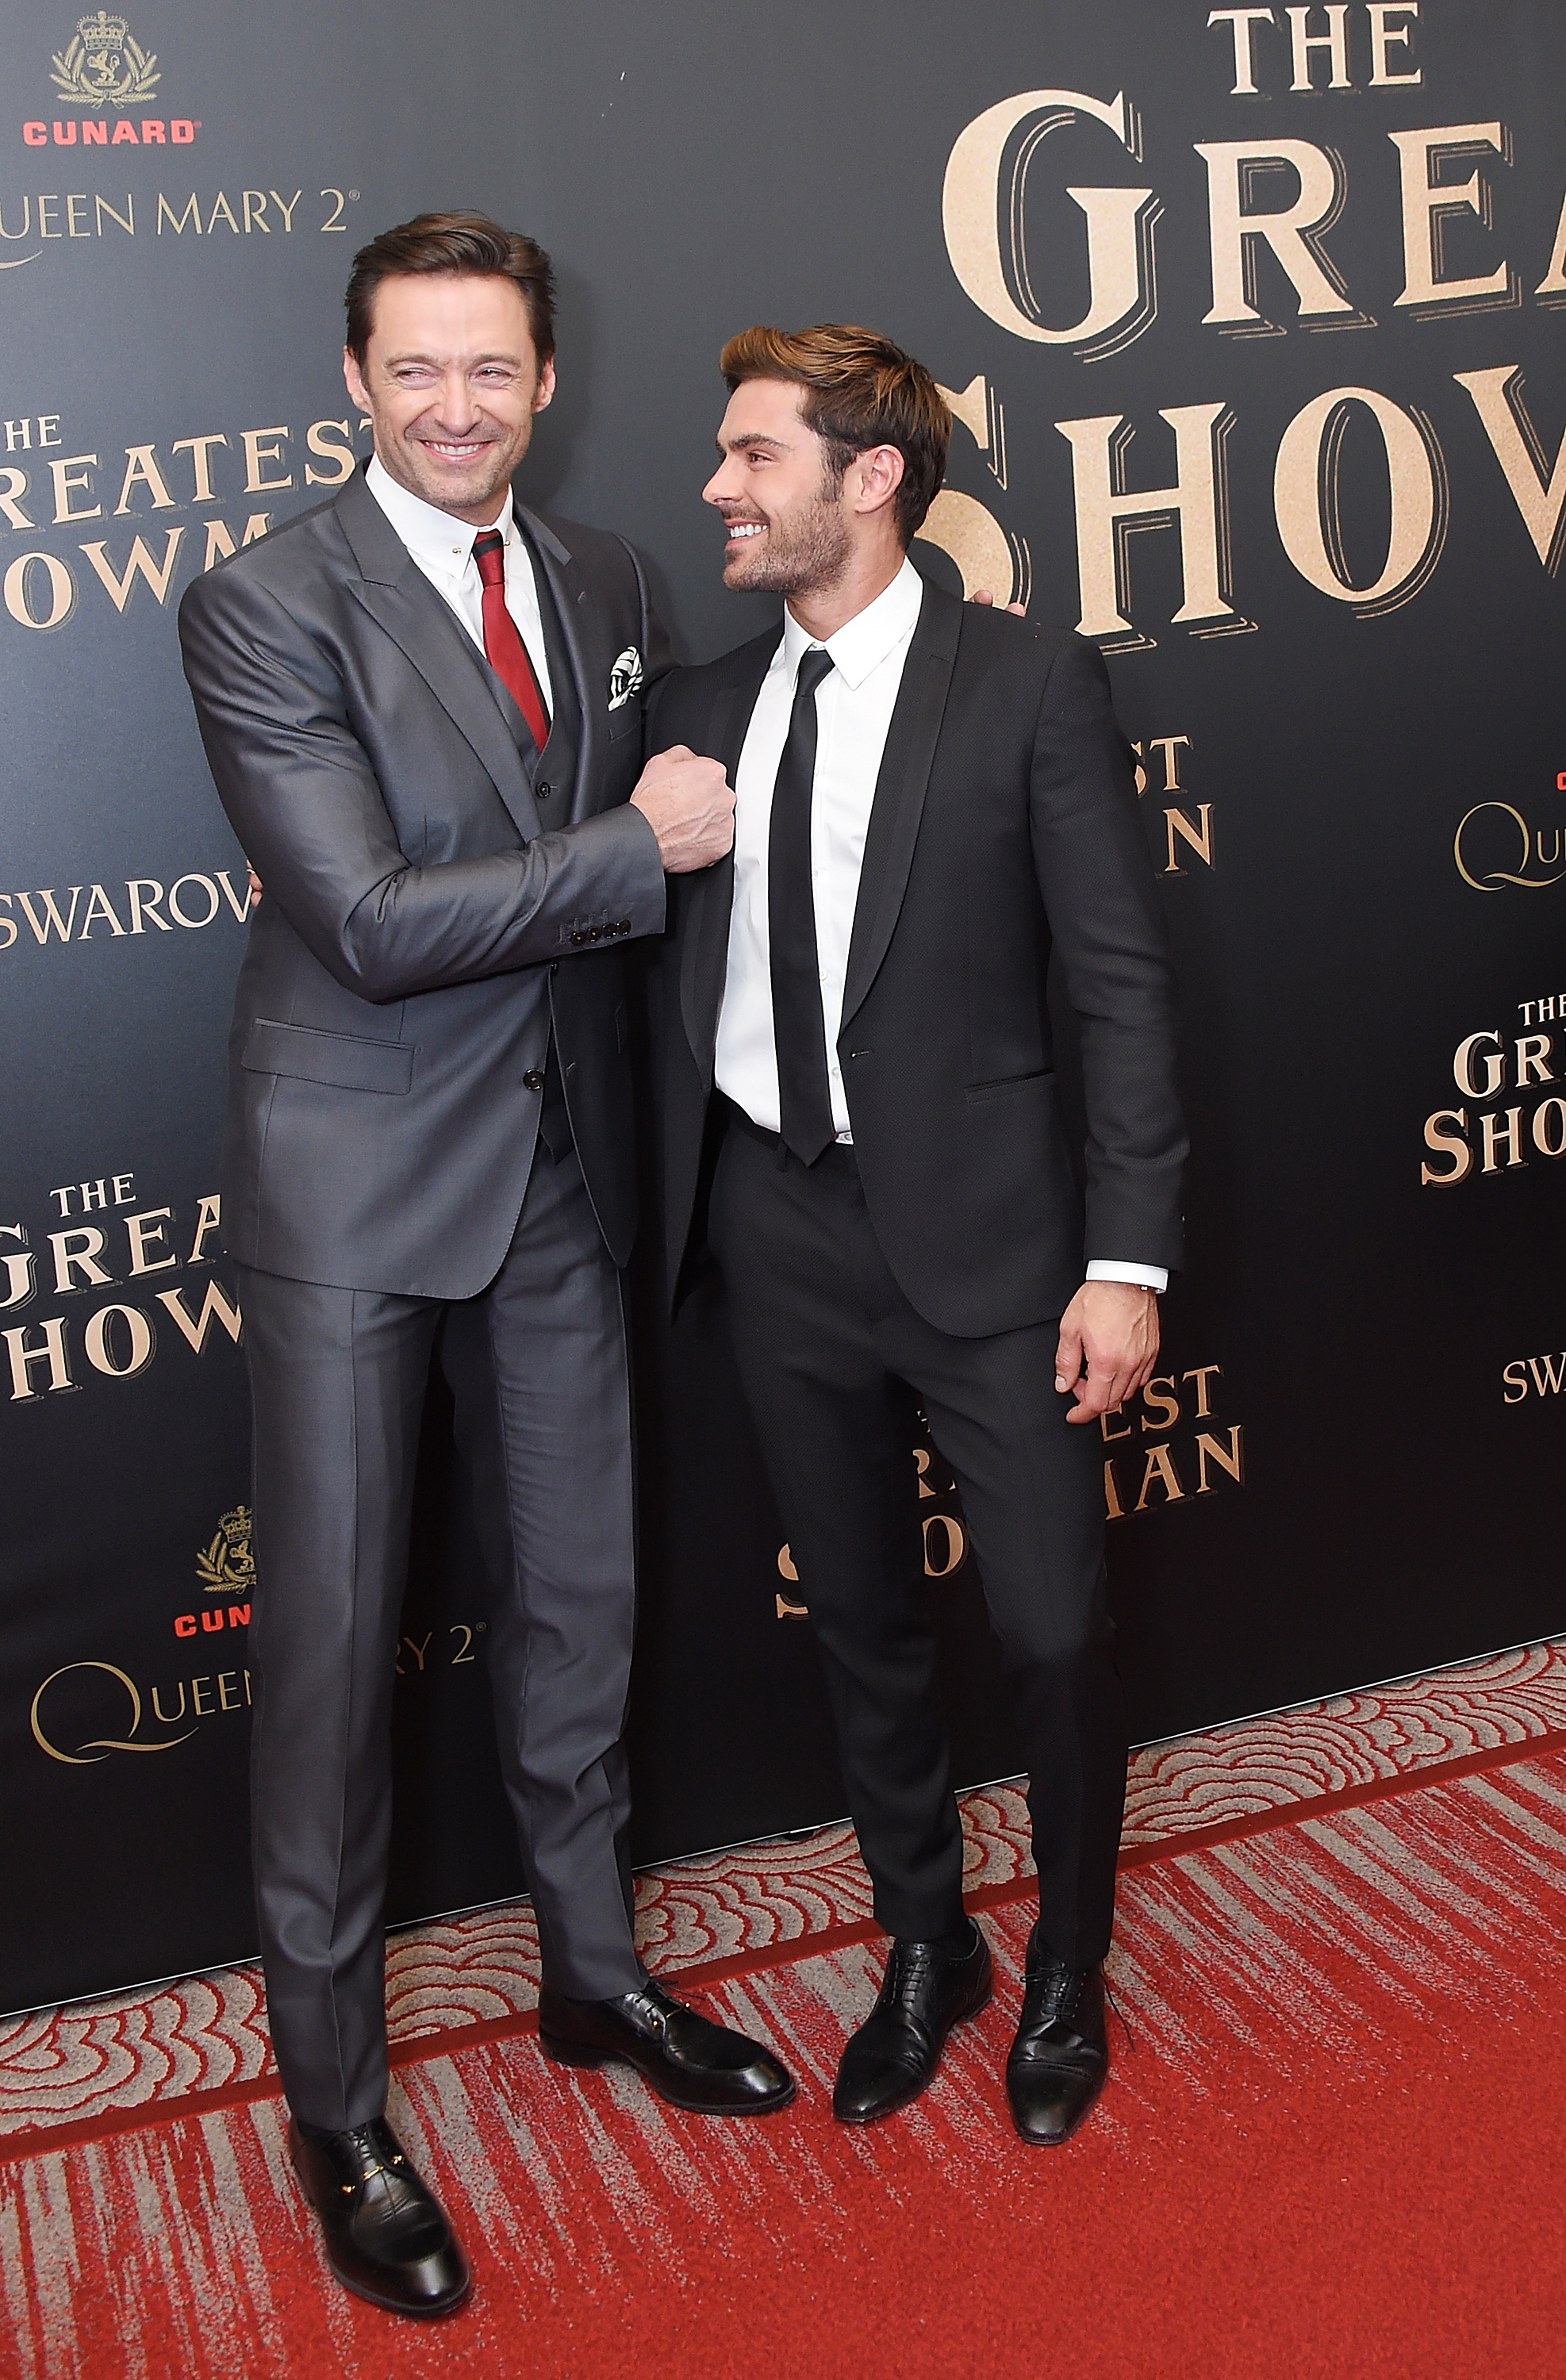 Zac Efron Height: How Tall is The Greatest Showman Actor